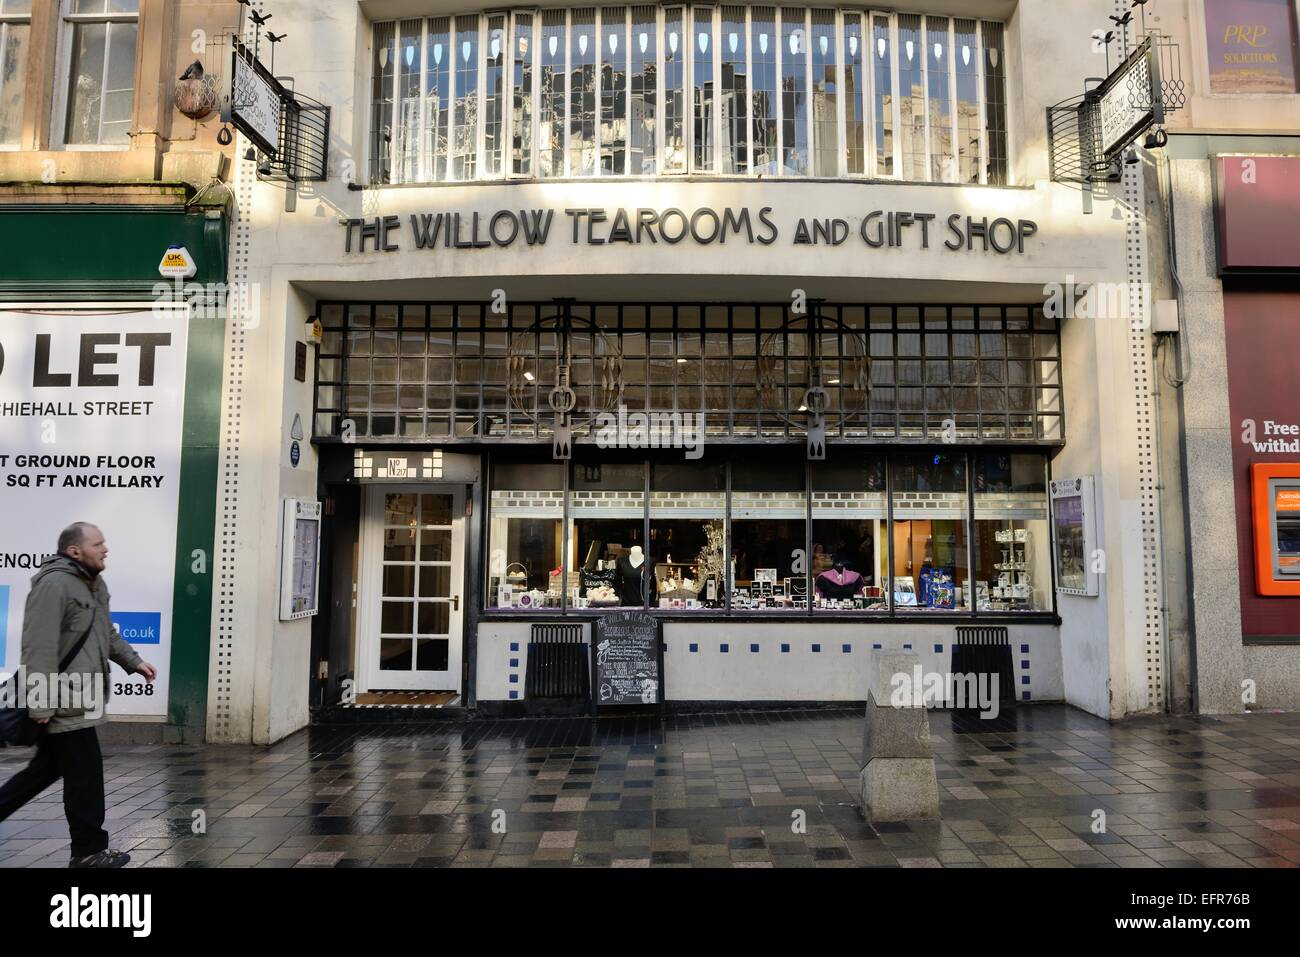 Charles Rennie Mackintosh's Willow Tearooms and Gift Shop